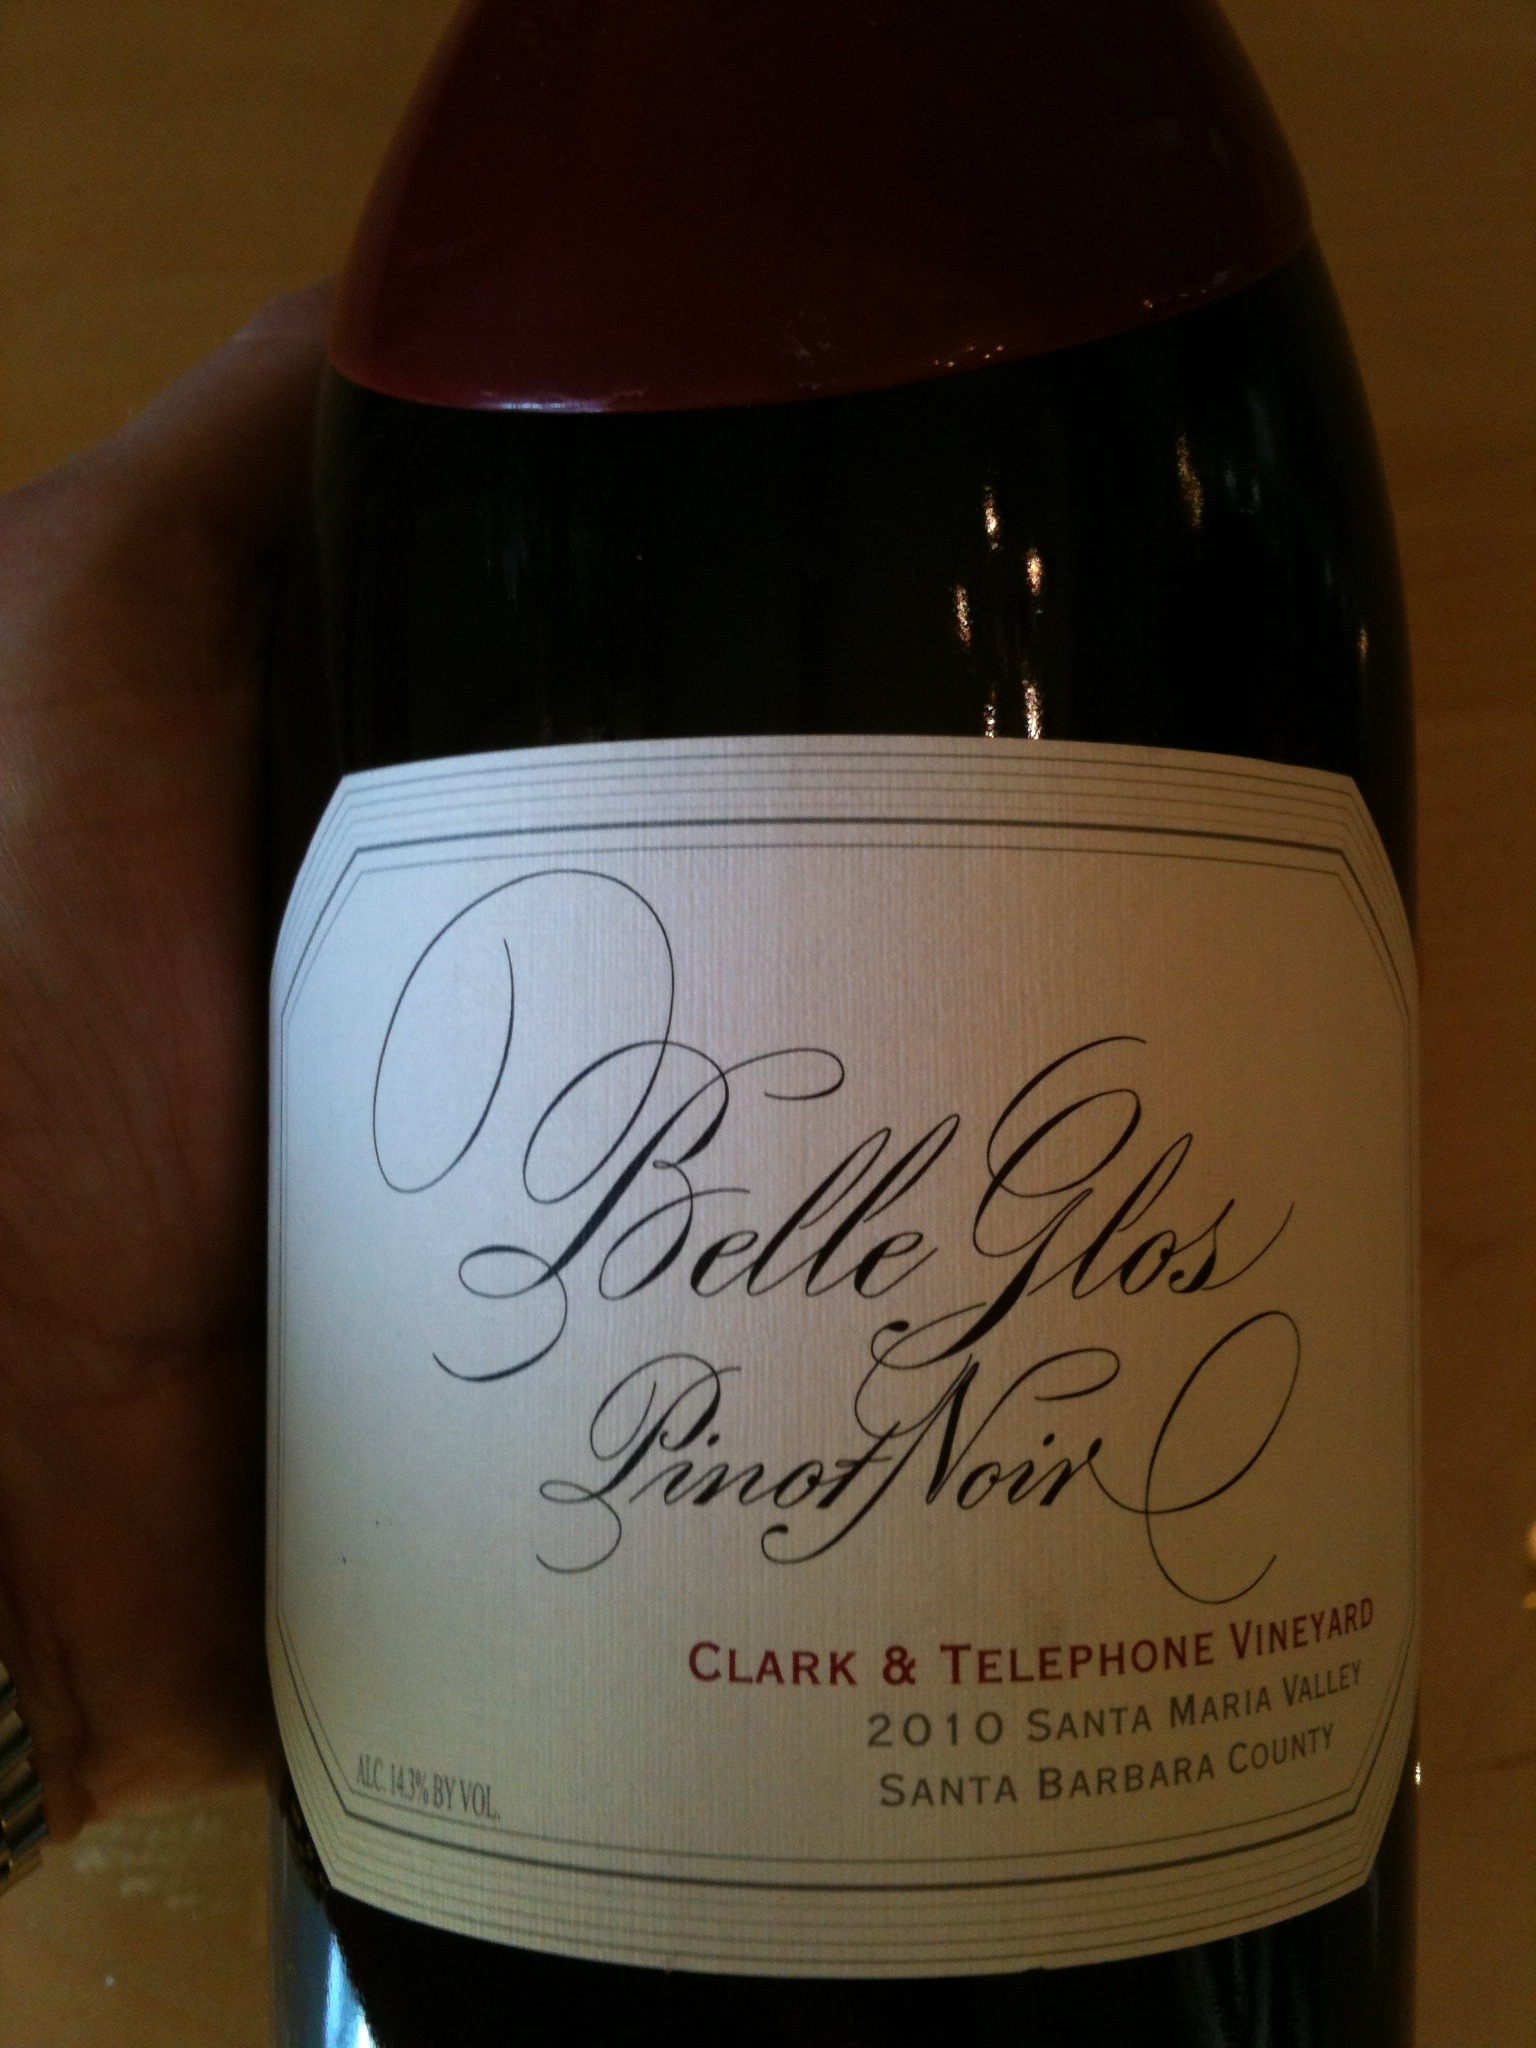 Belle Glos Pinot Noir Clark & Telegraph Vineyards 2010 - Wine Review